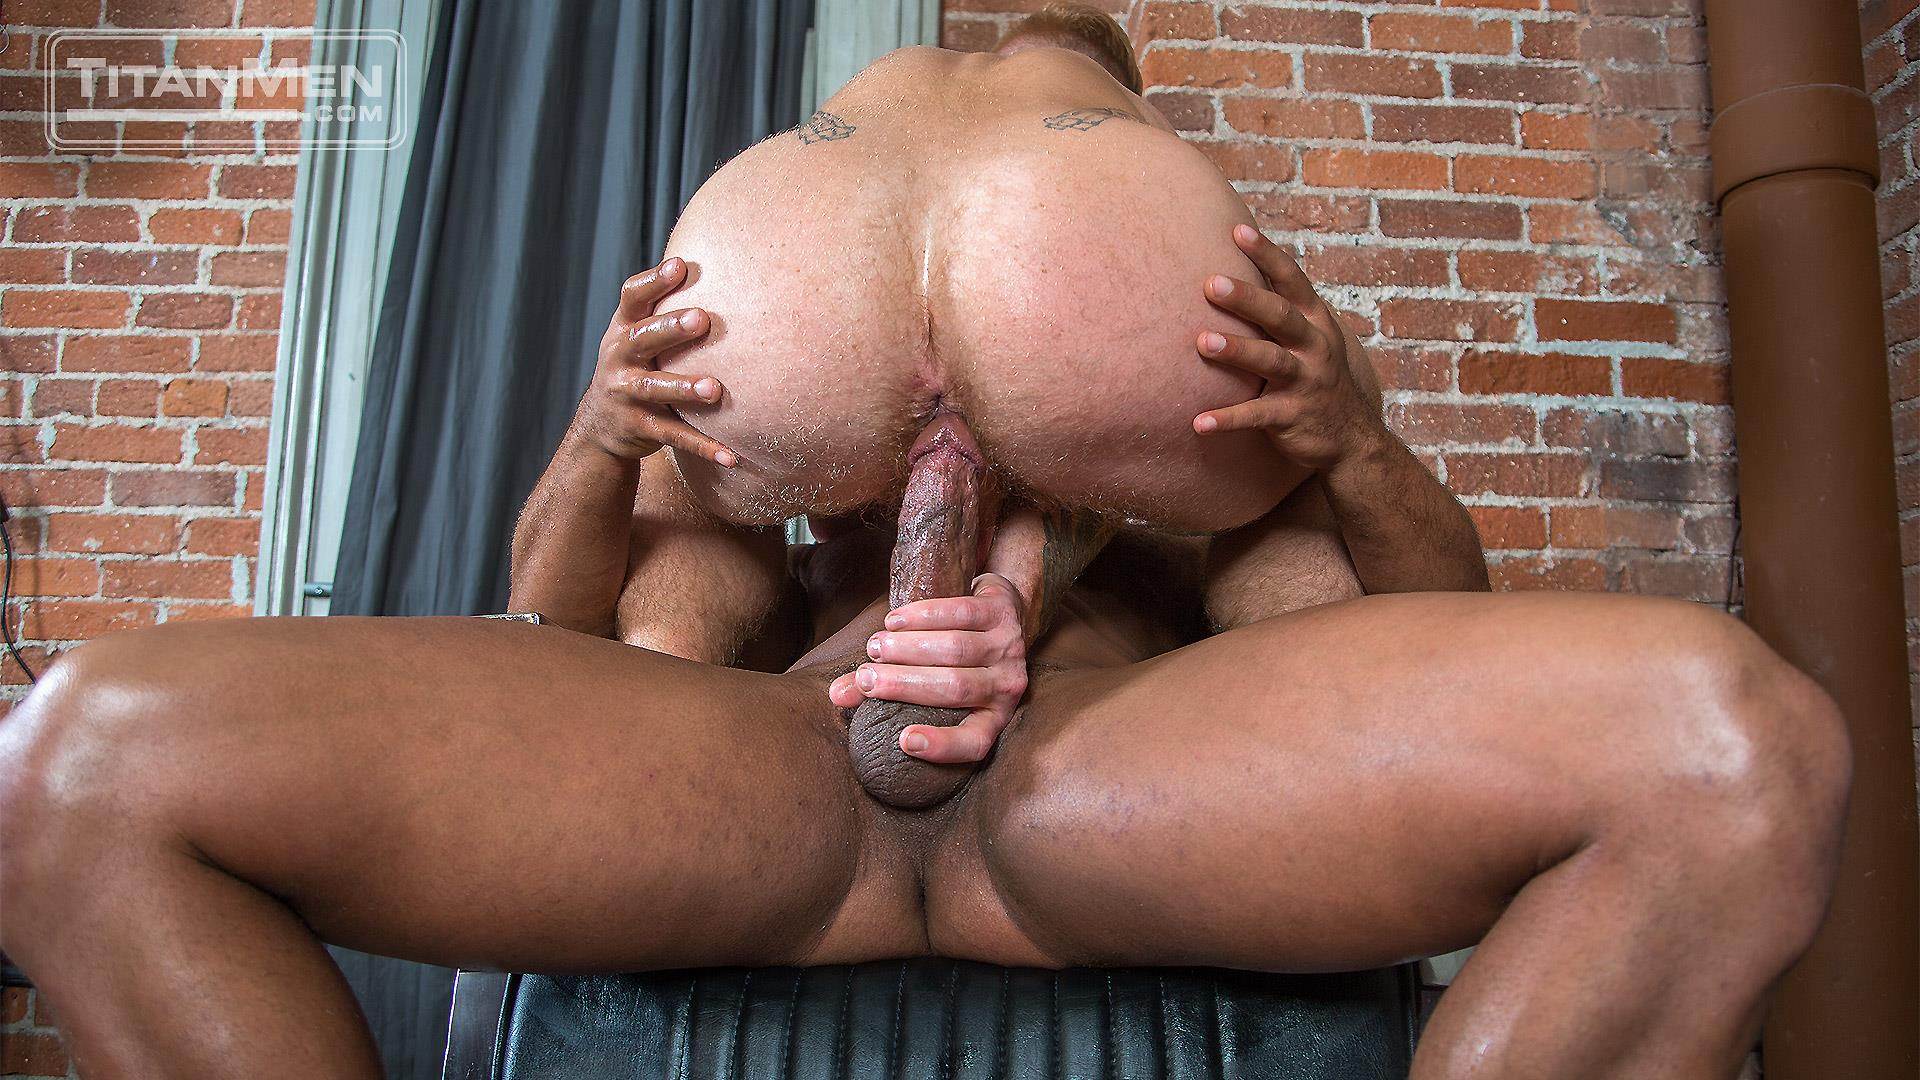 TitanMen-Micah-Brandt-and-Bennett-Anthony-Interracial-Muscle-Hunks-Flip-Fucking-Amateur-Gay-Porn-16 Micah Brandt and Bennett Anthony Flip-Fucking With Their Big Dicks